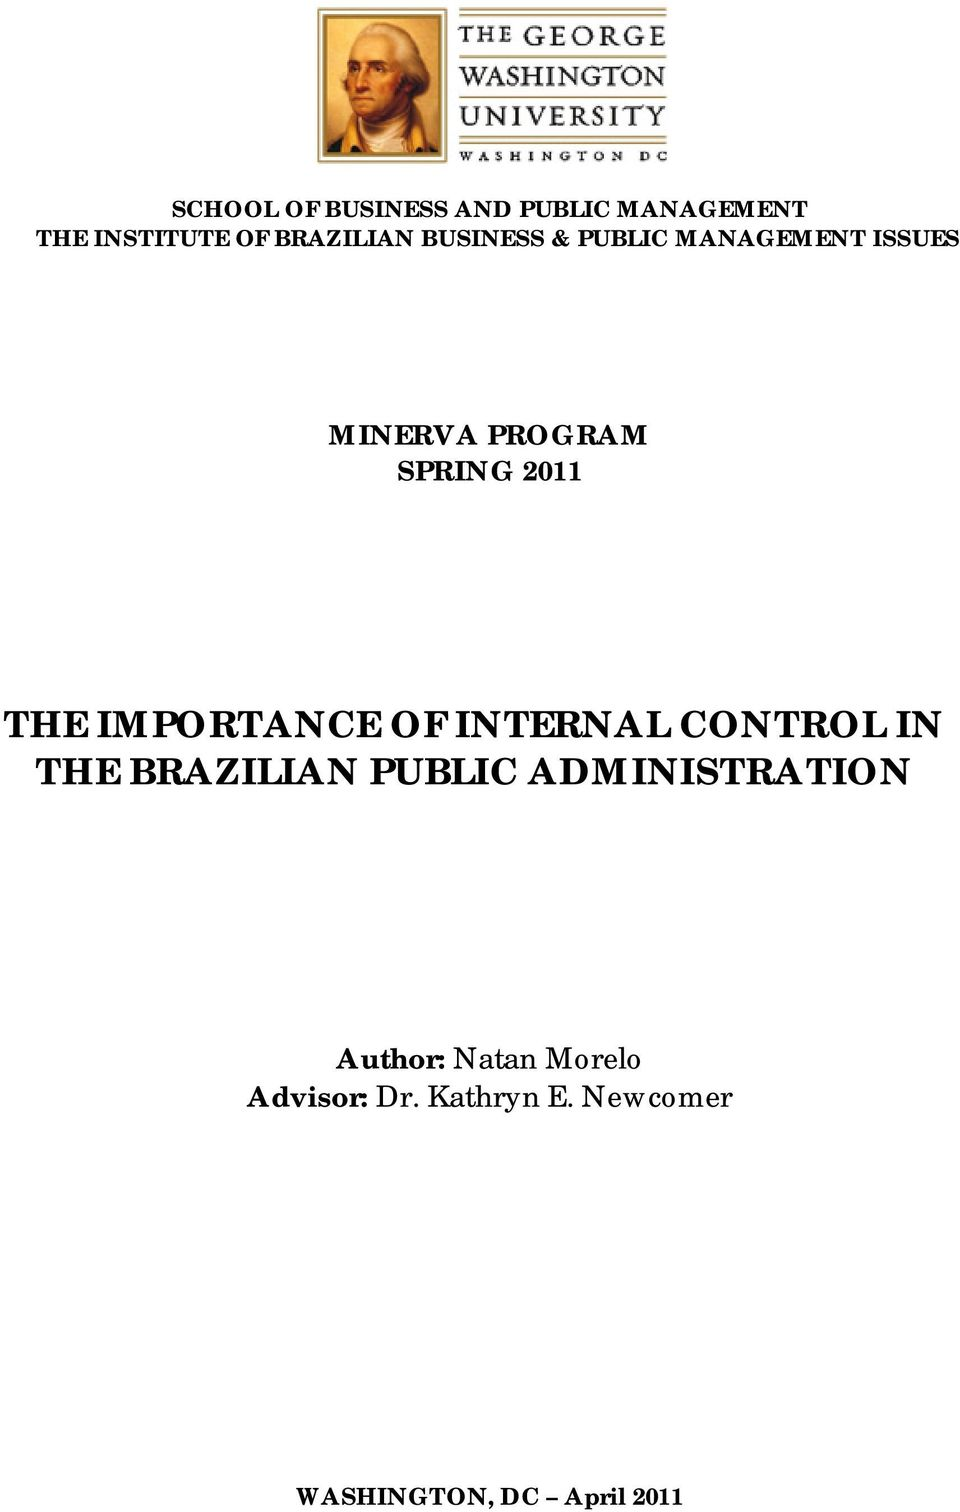 IMPORTANCE OF INTERNAL CONTROL IN THE BRAZILIAN PUBLIC ADMINISTRATION